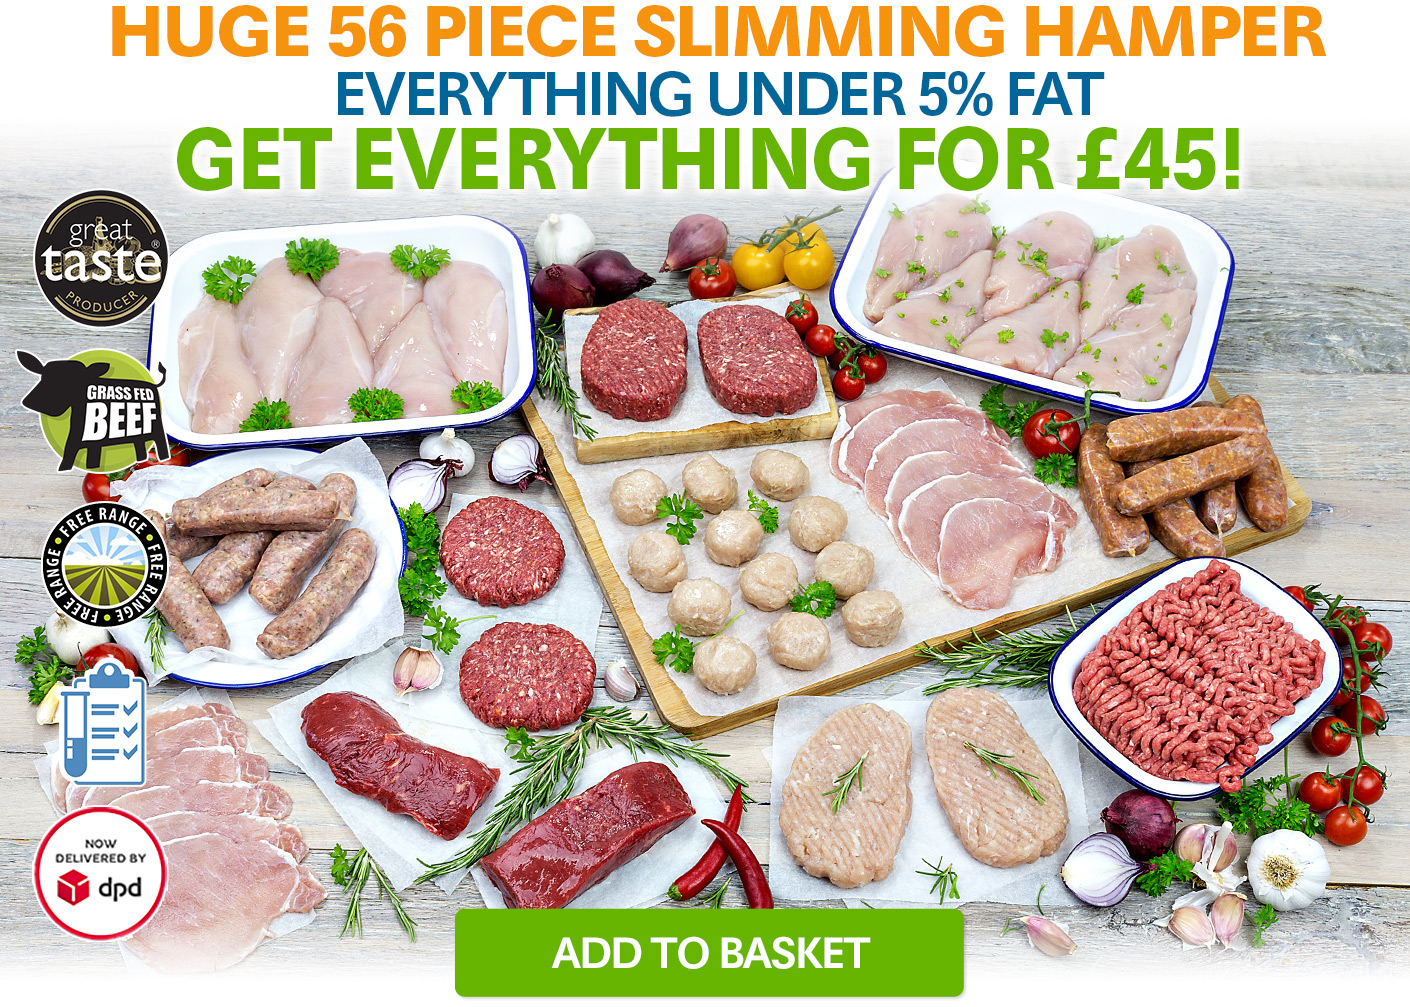 Slimming Hamper 56 Piece